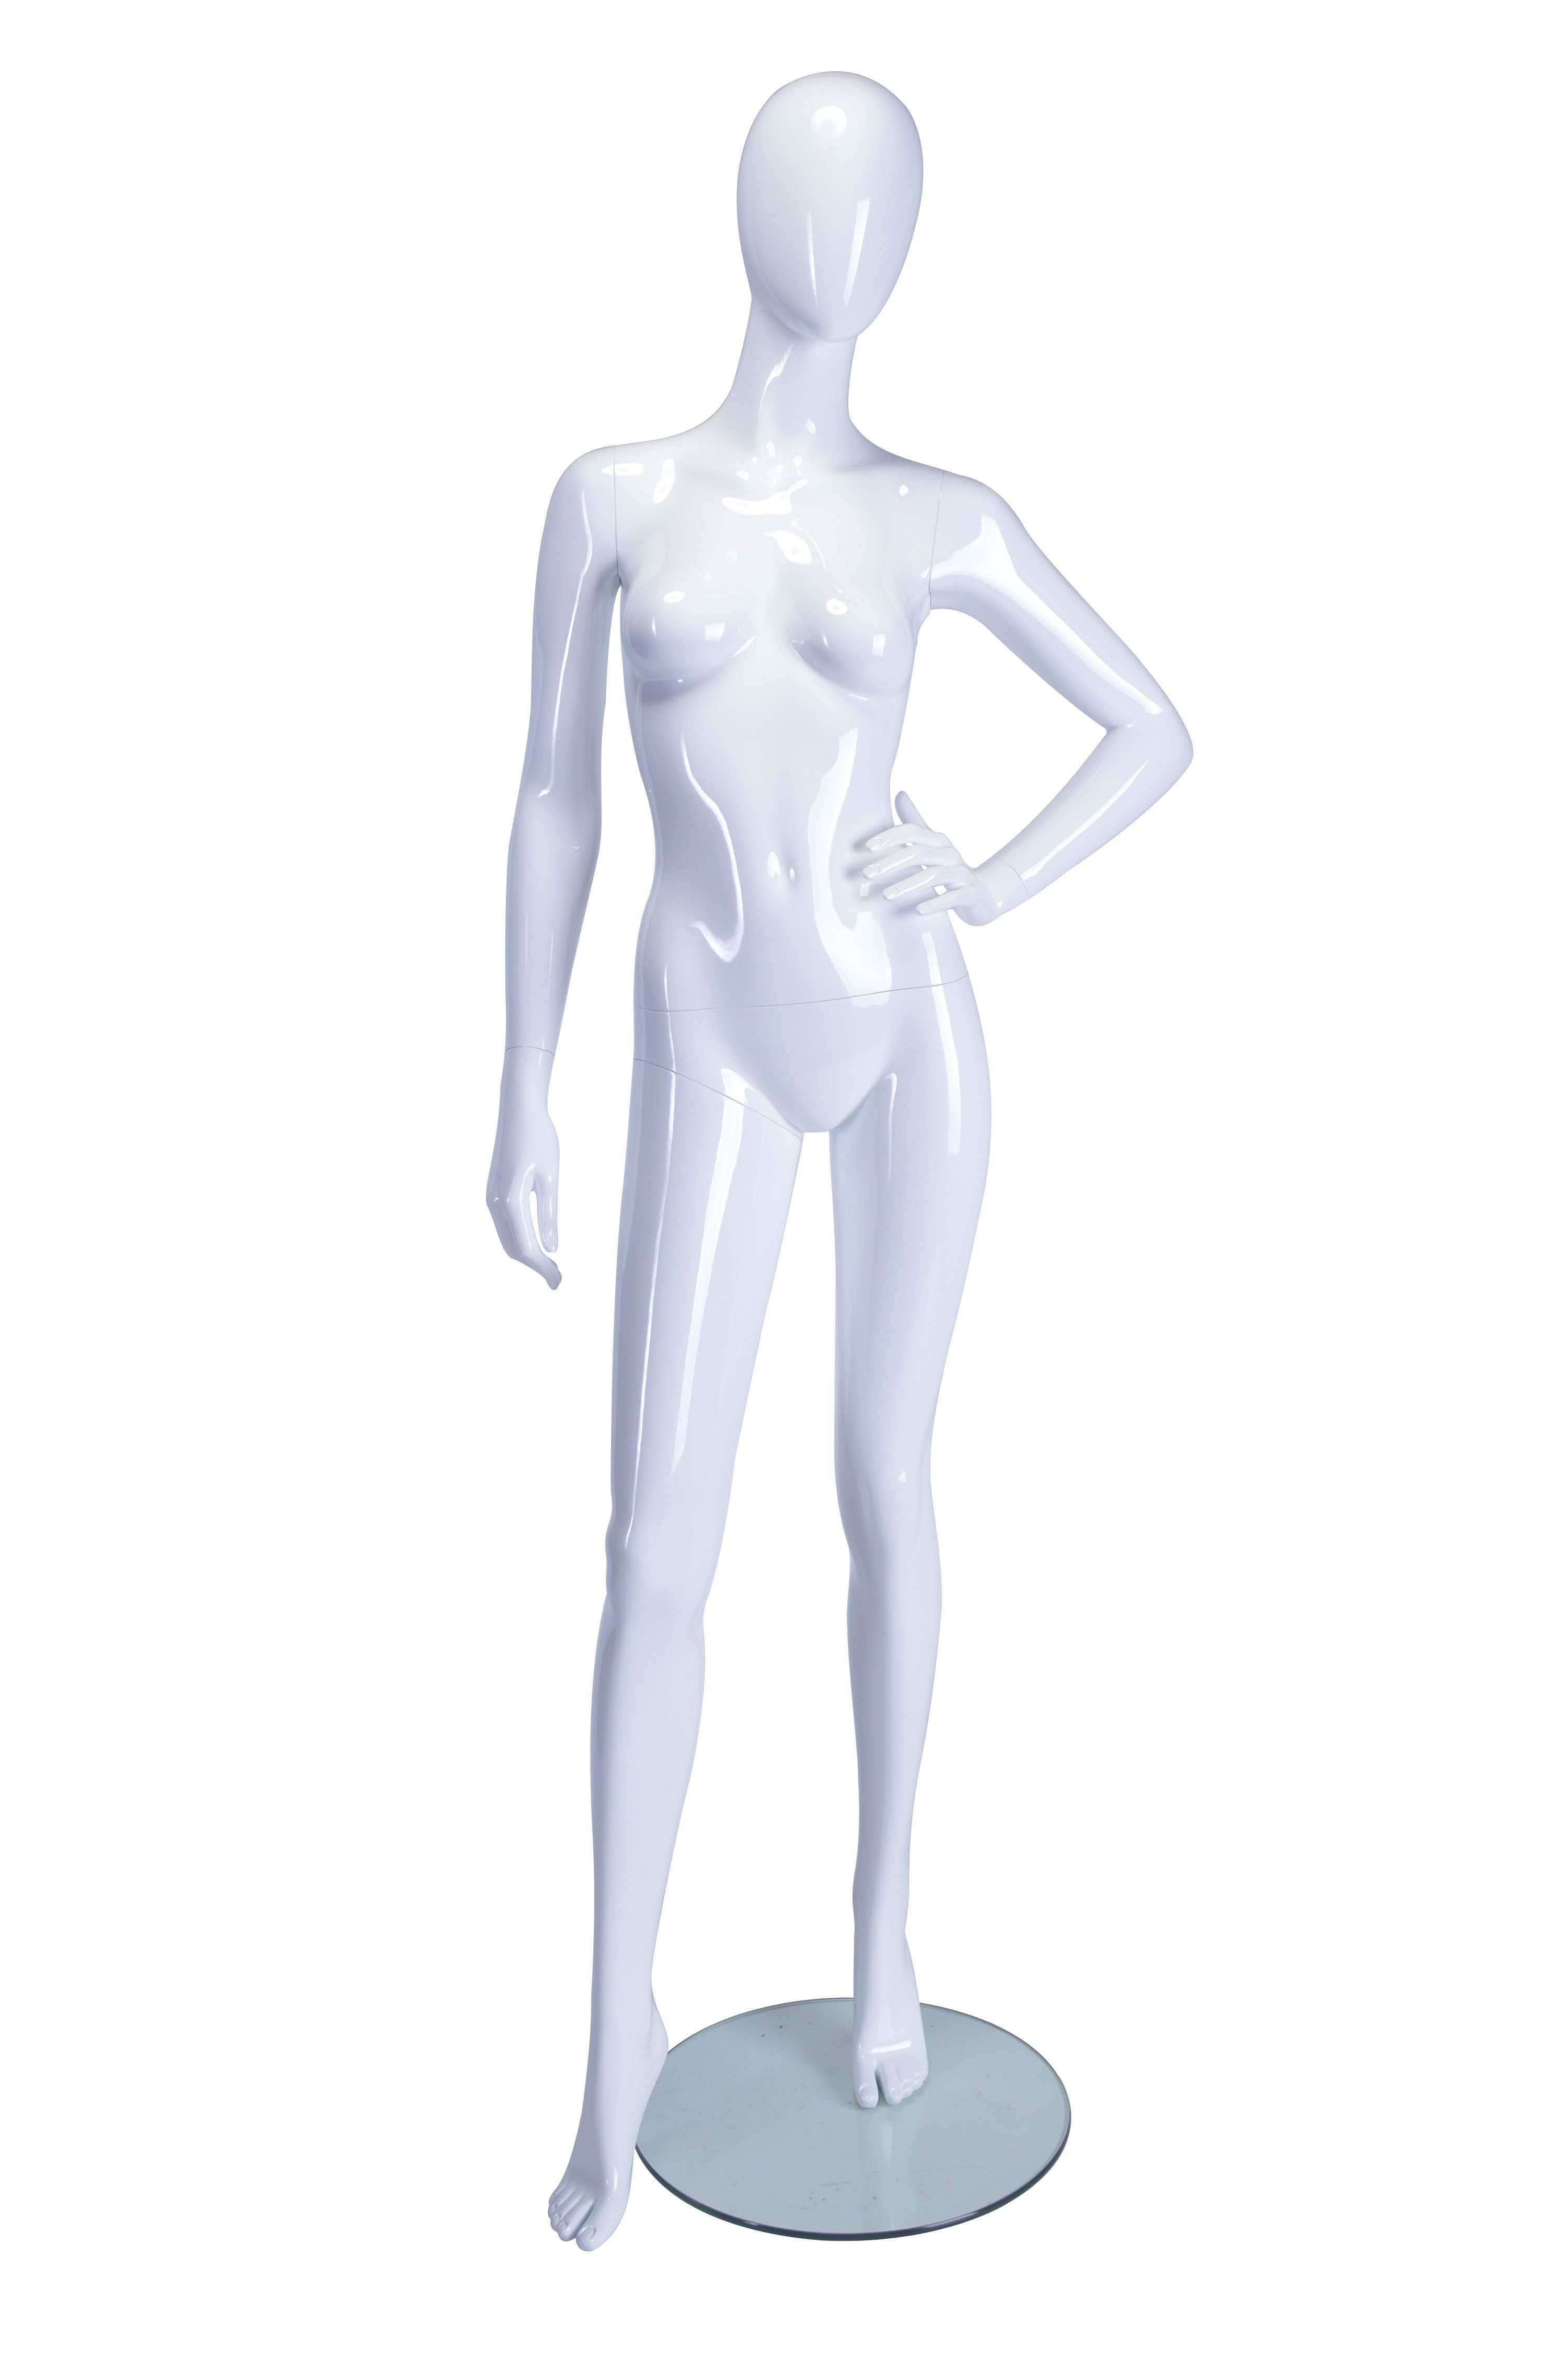 HB1002172 - Female Mannequin Hand on Left Hip - White Glossy